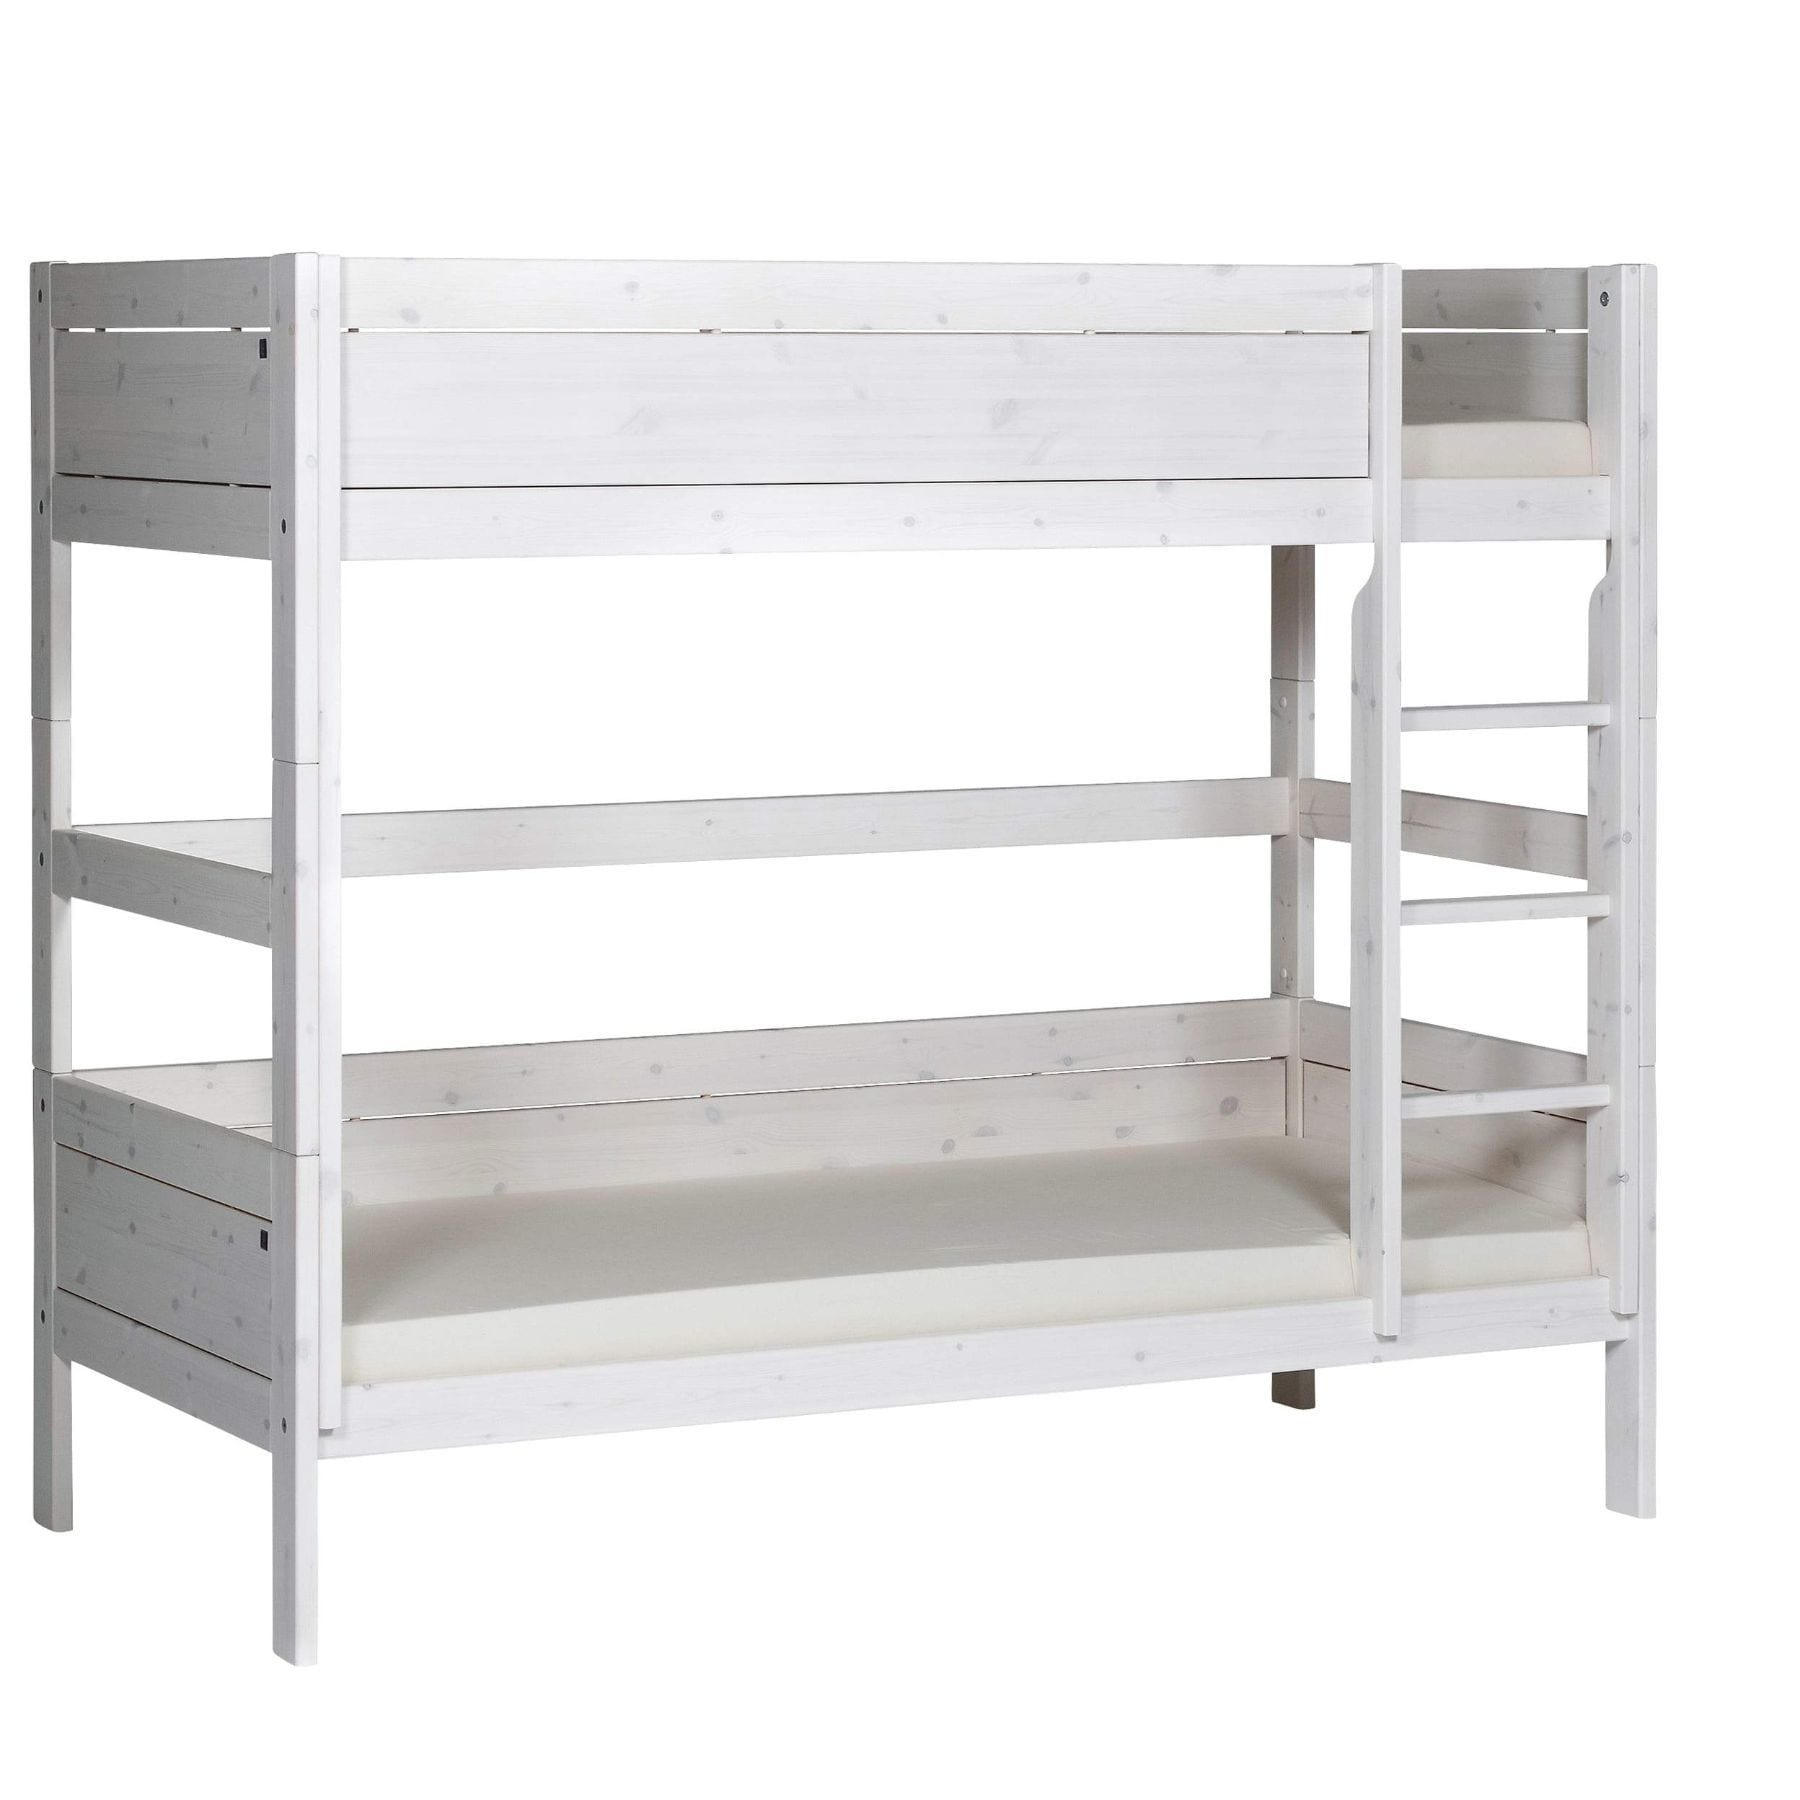 Lifetime Bunk Bed - huggle